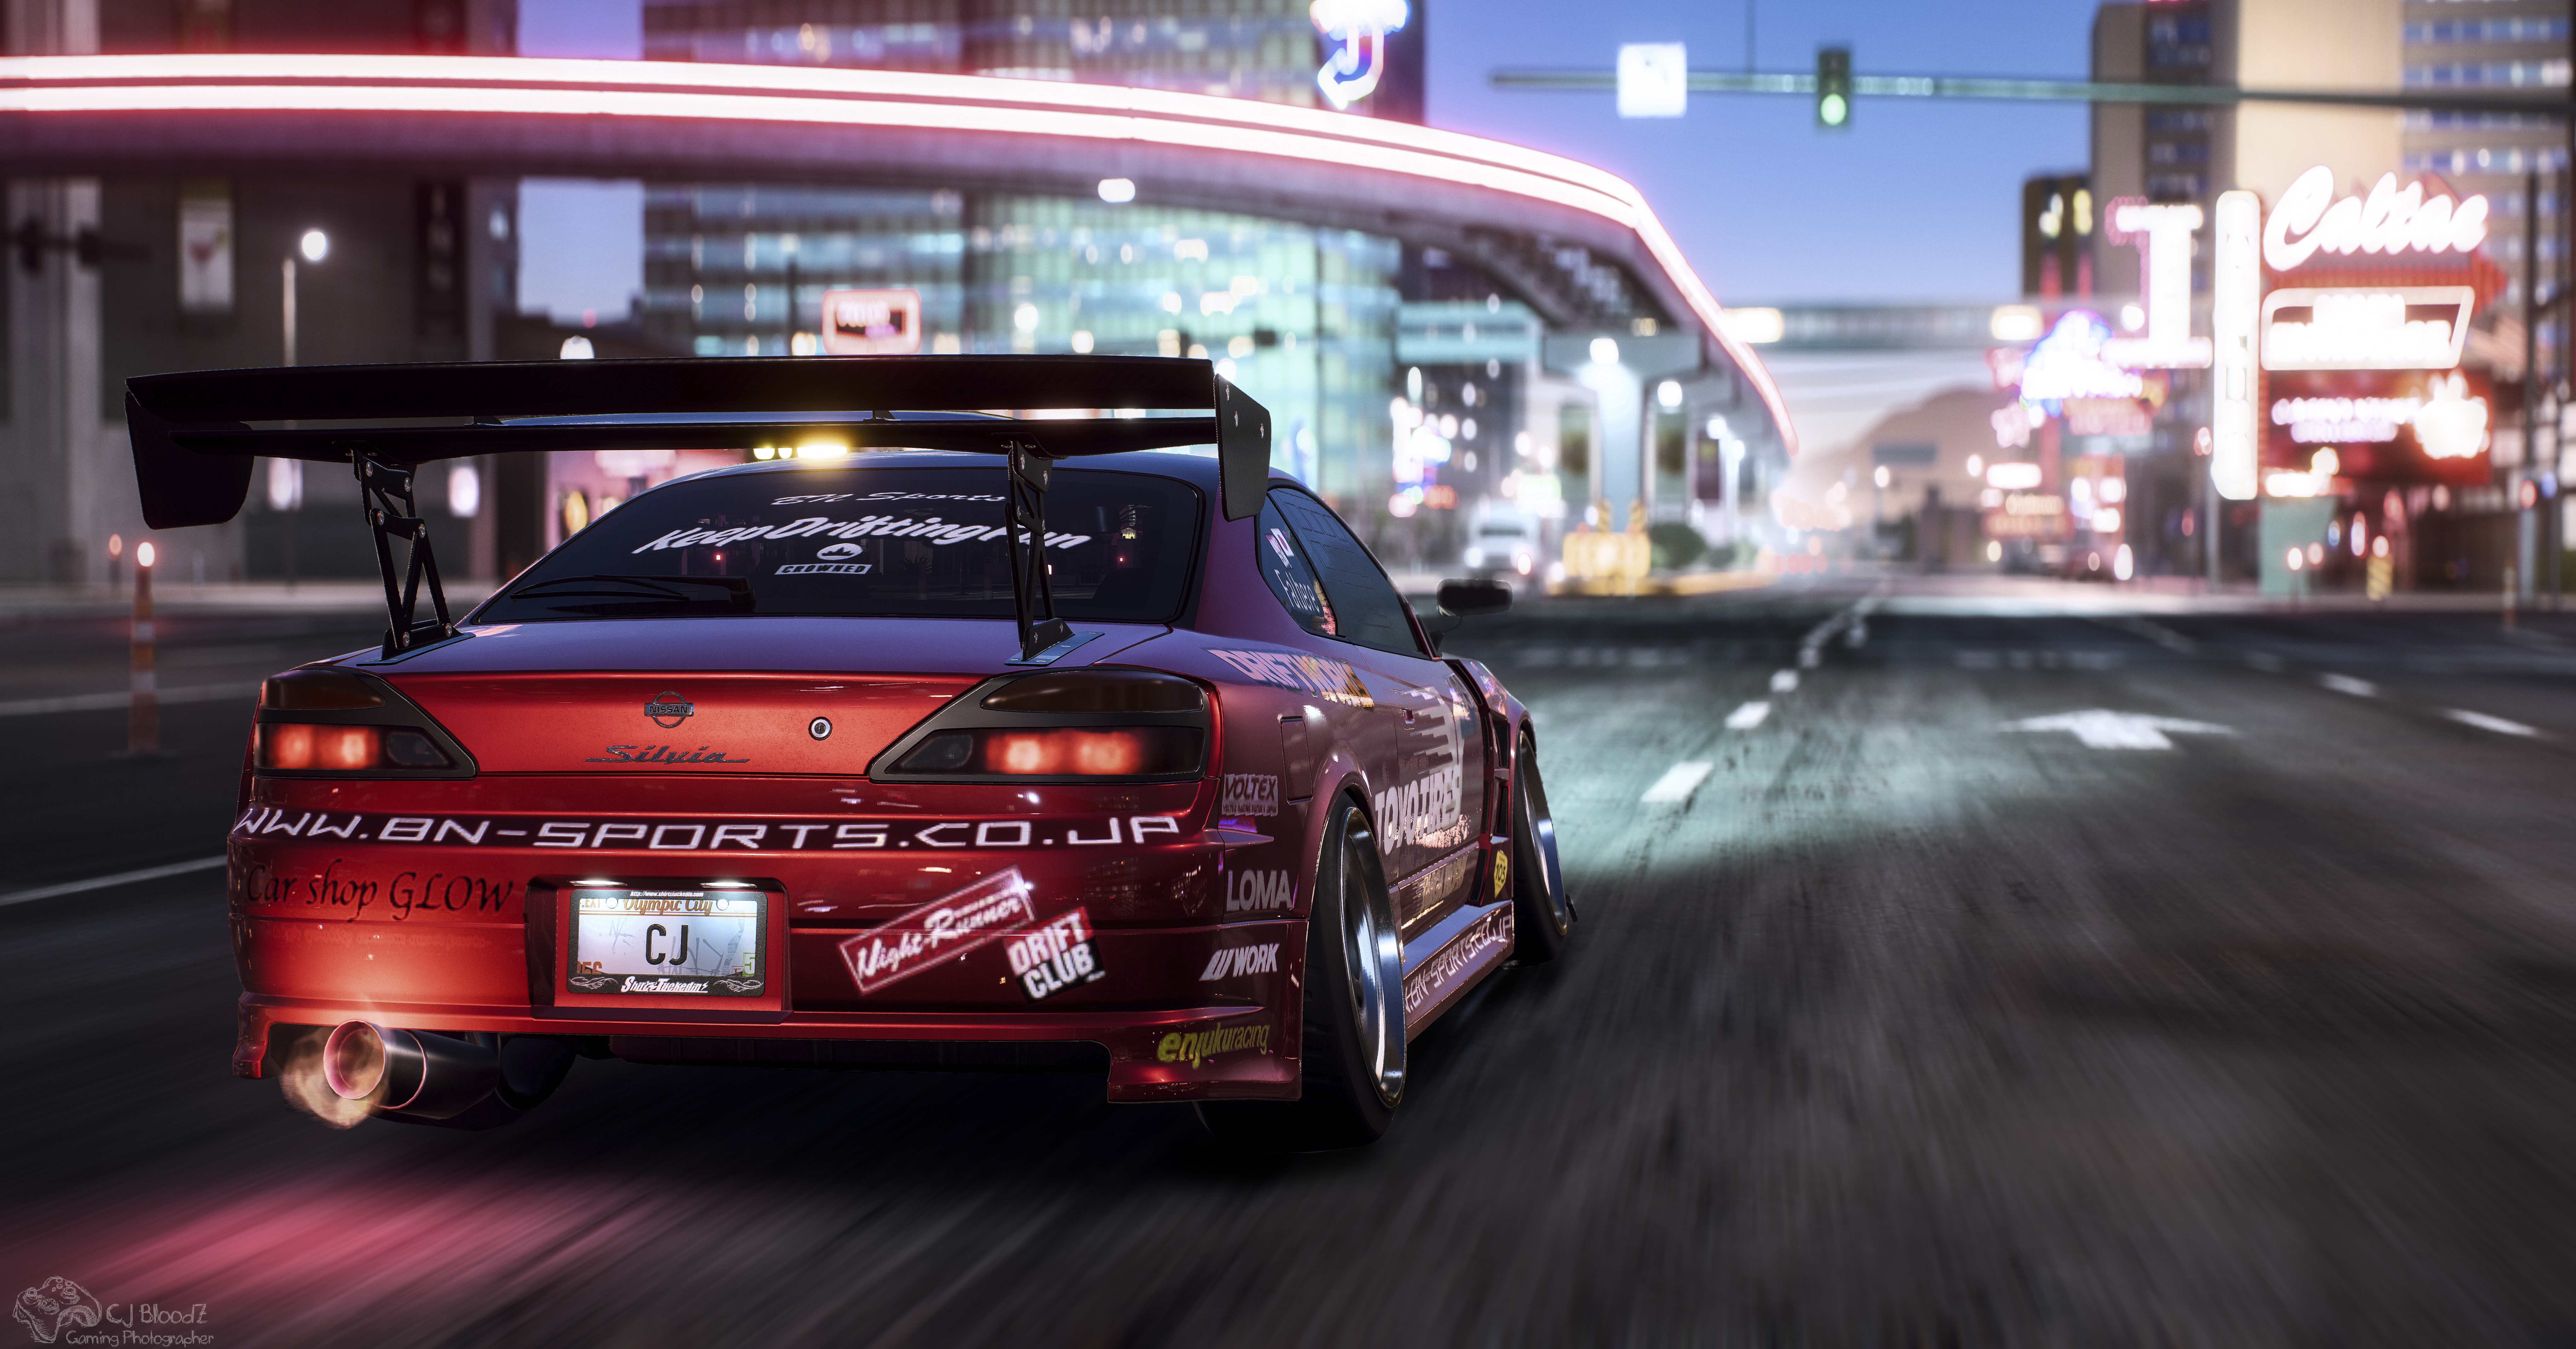 Need For Speed Payback Wallpaper: Need For Speed Payback Game 8k, HD Games, 4k Wallpapers